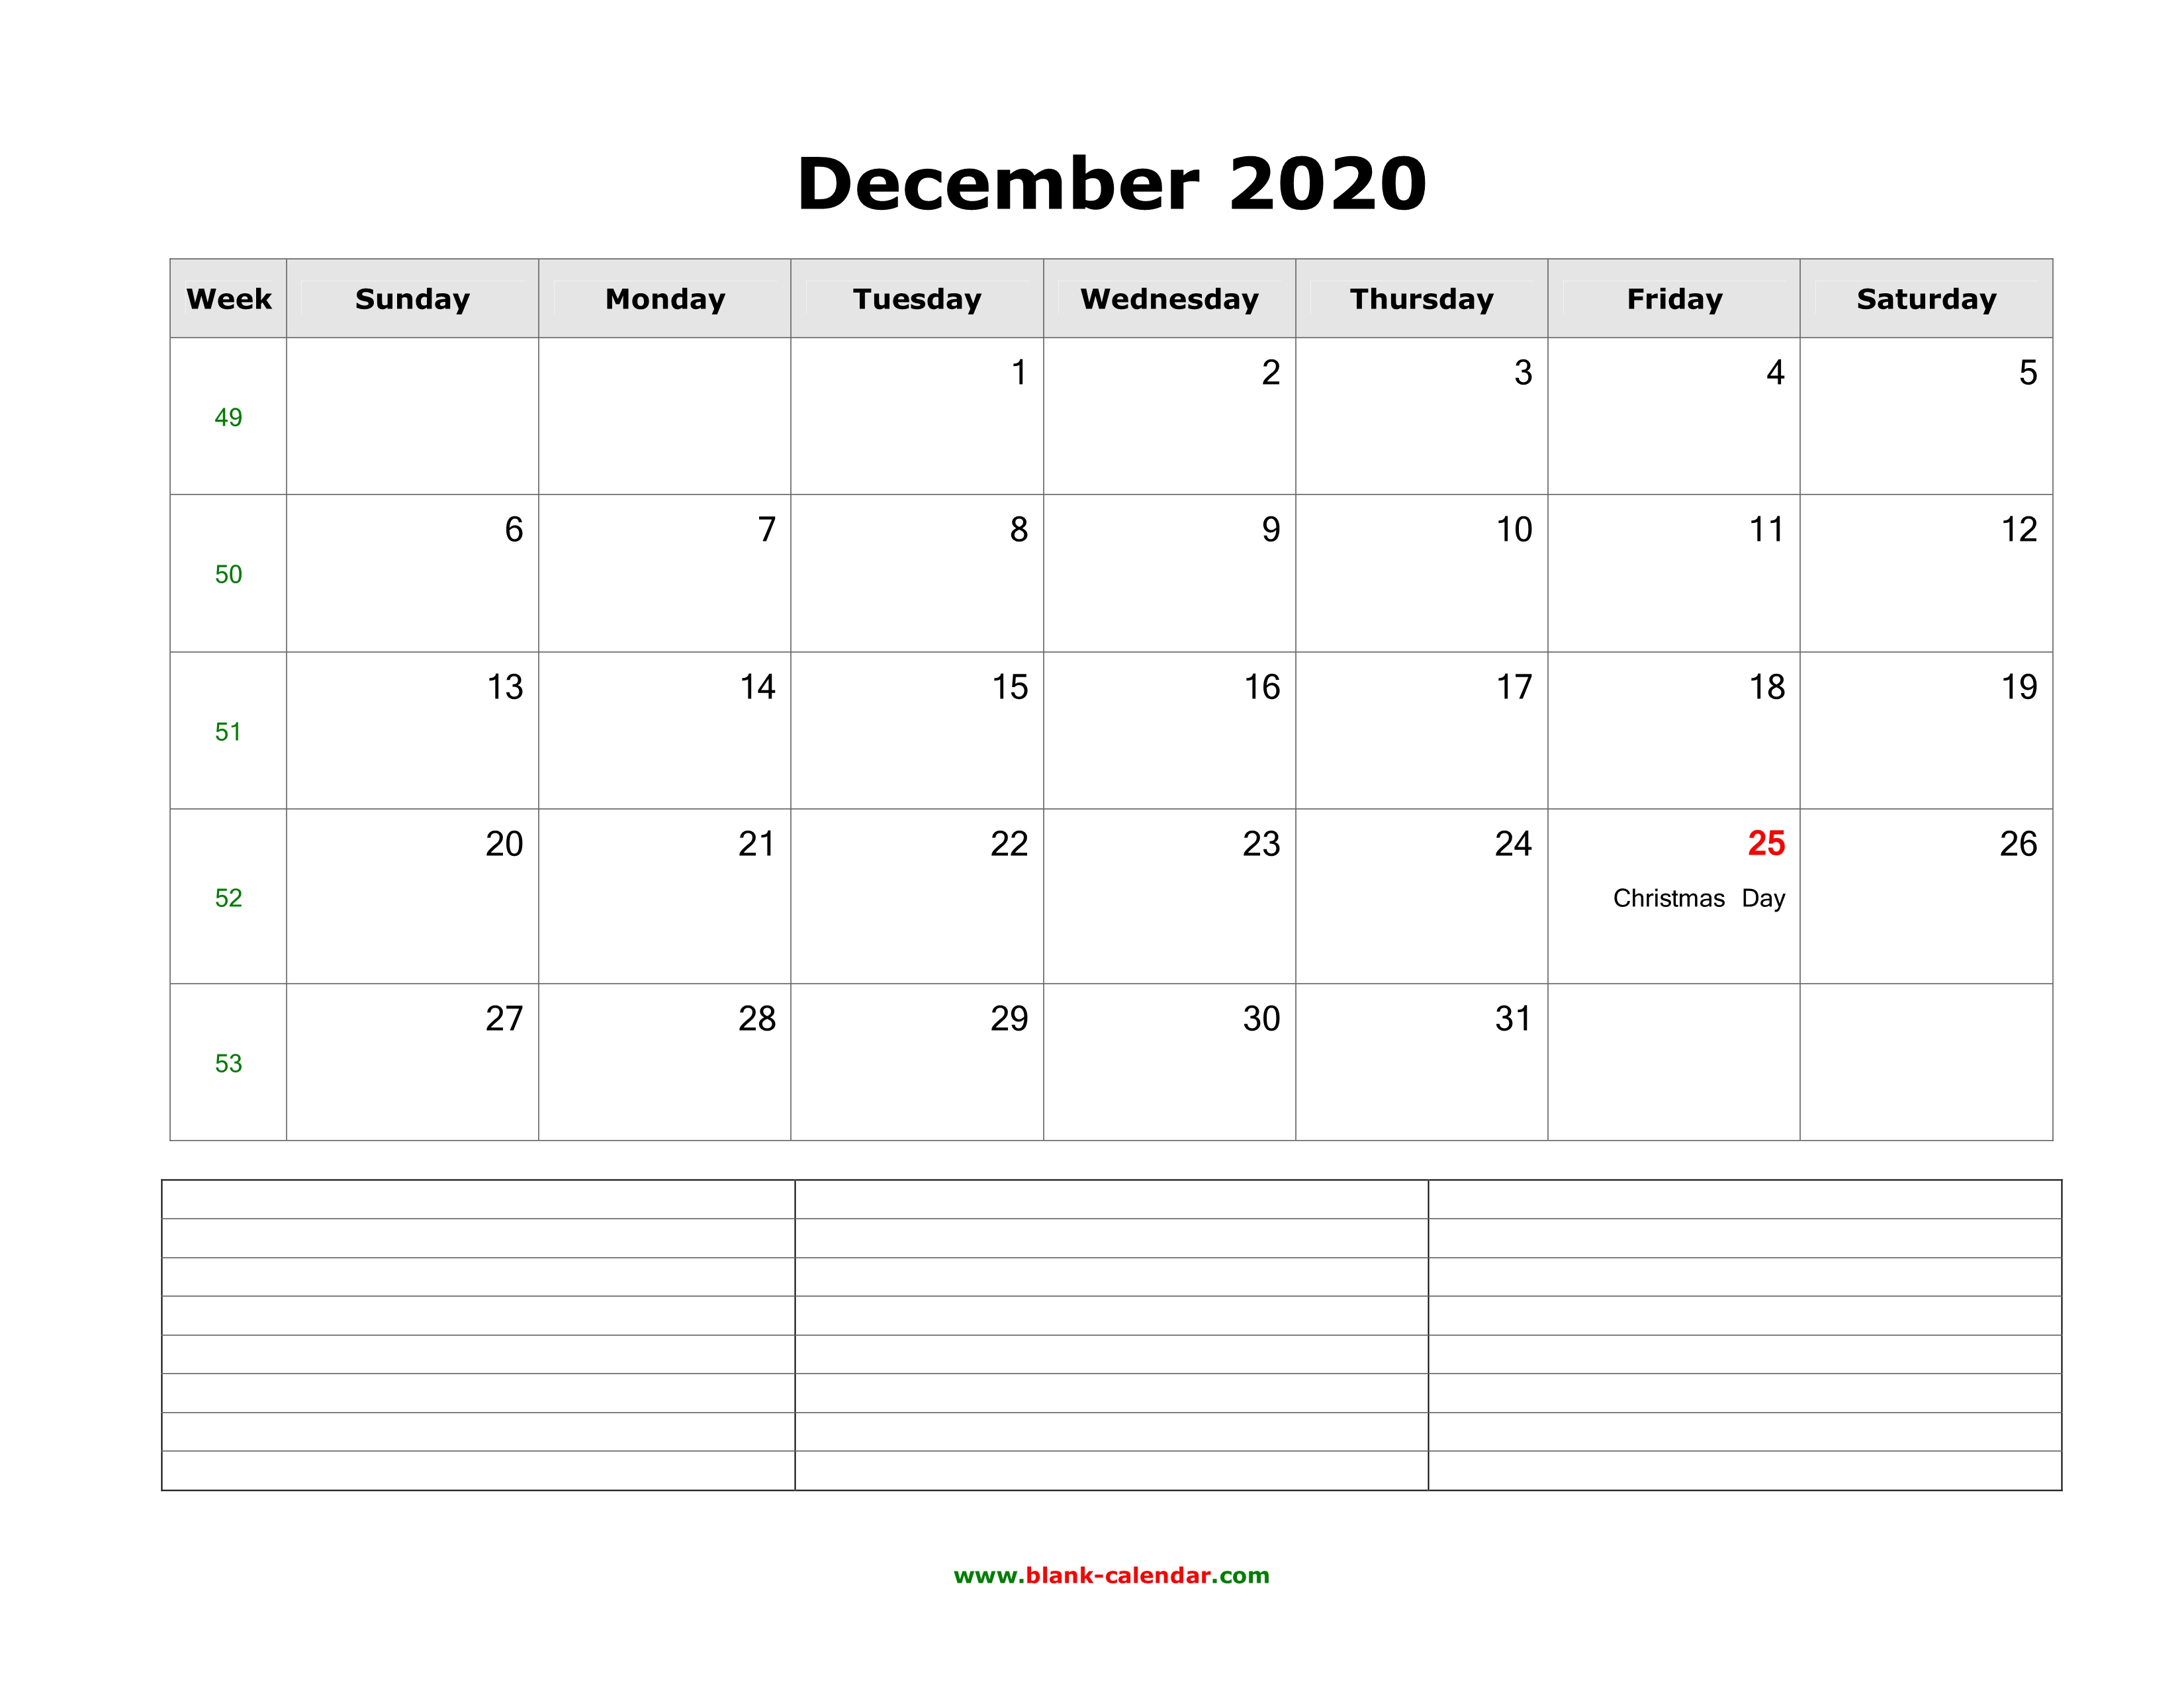 Free Horizontal December 2020 Calendar Download December 2020 Blank Calendar with Space for Notes